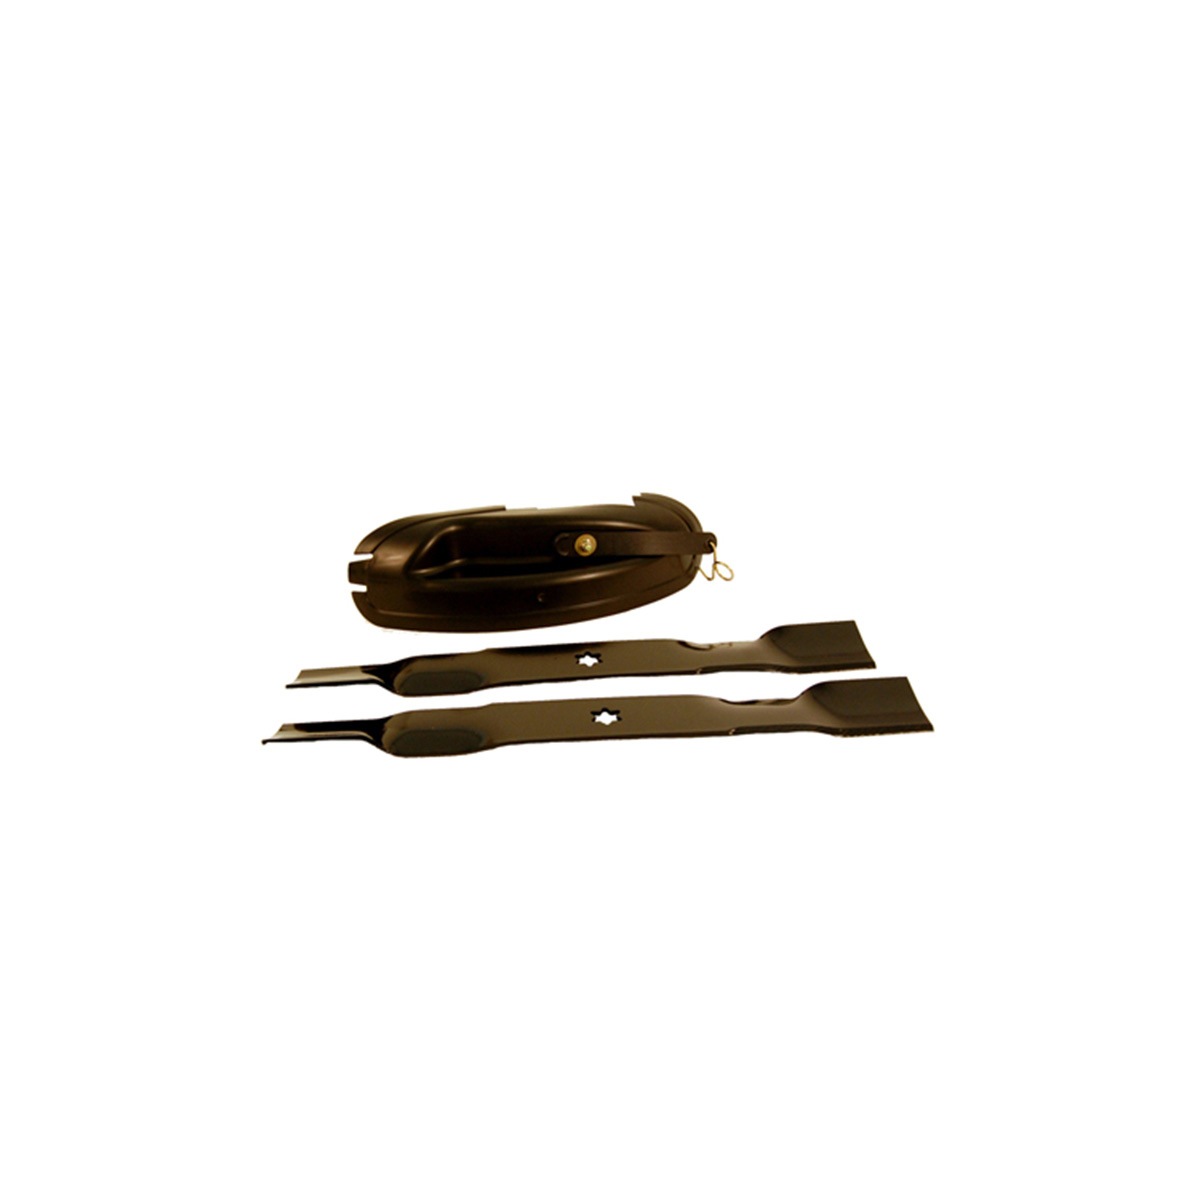 MULCH Kit 46 inch STAG 19A30005000